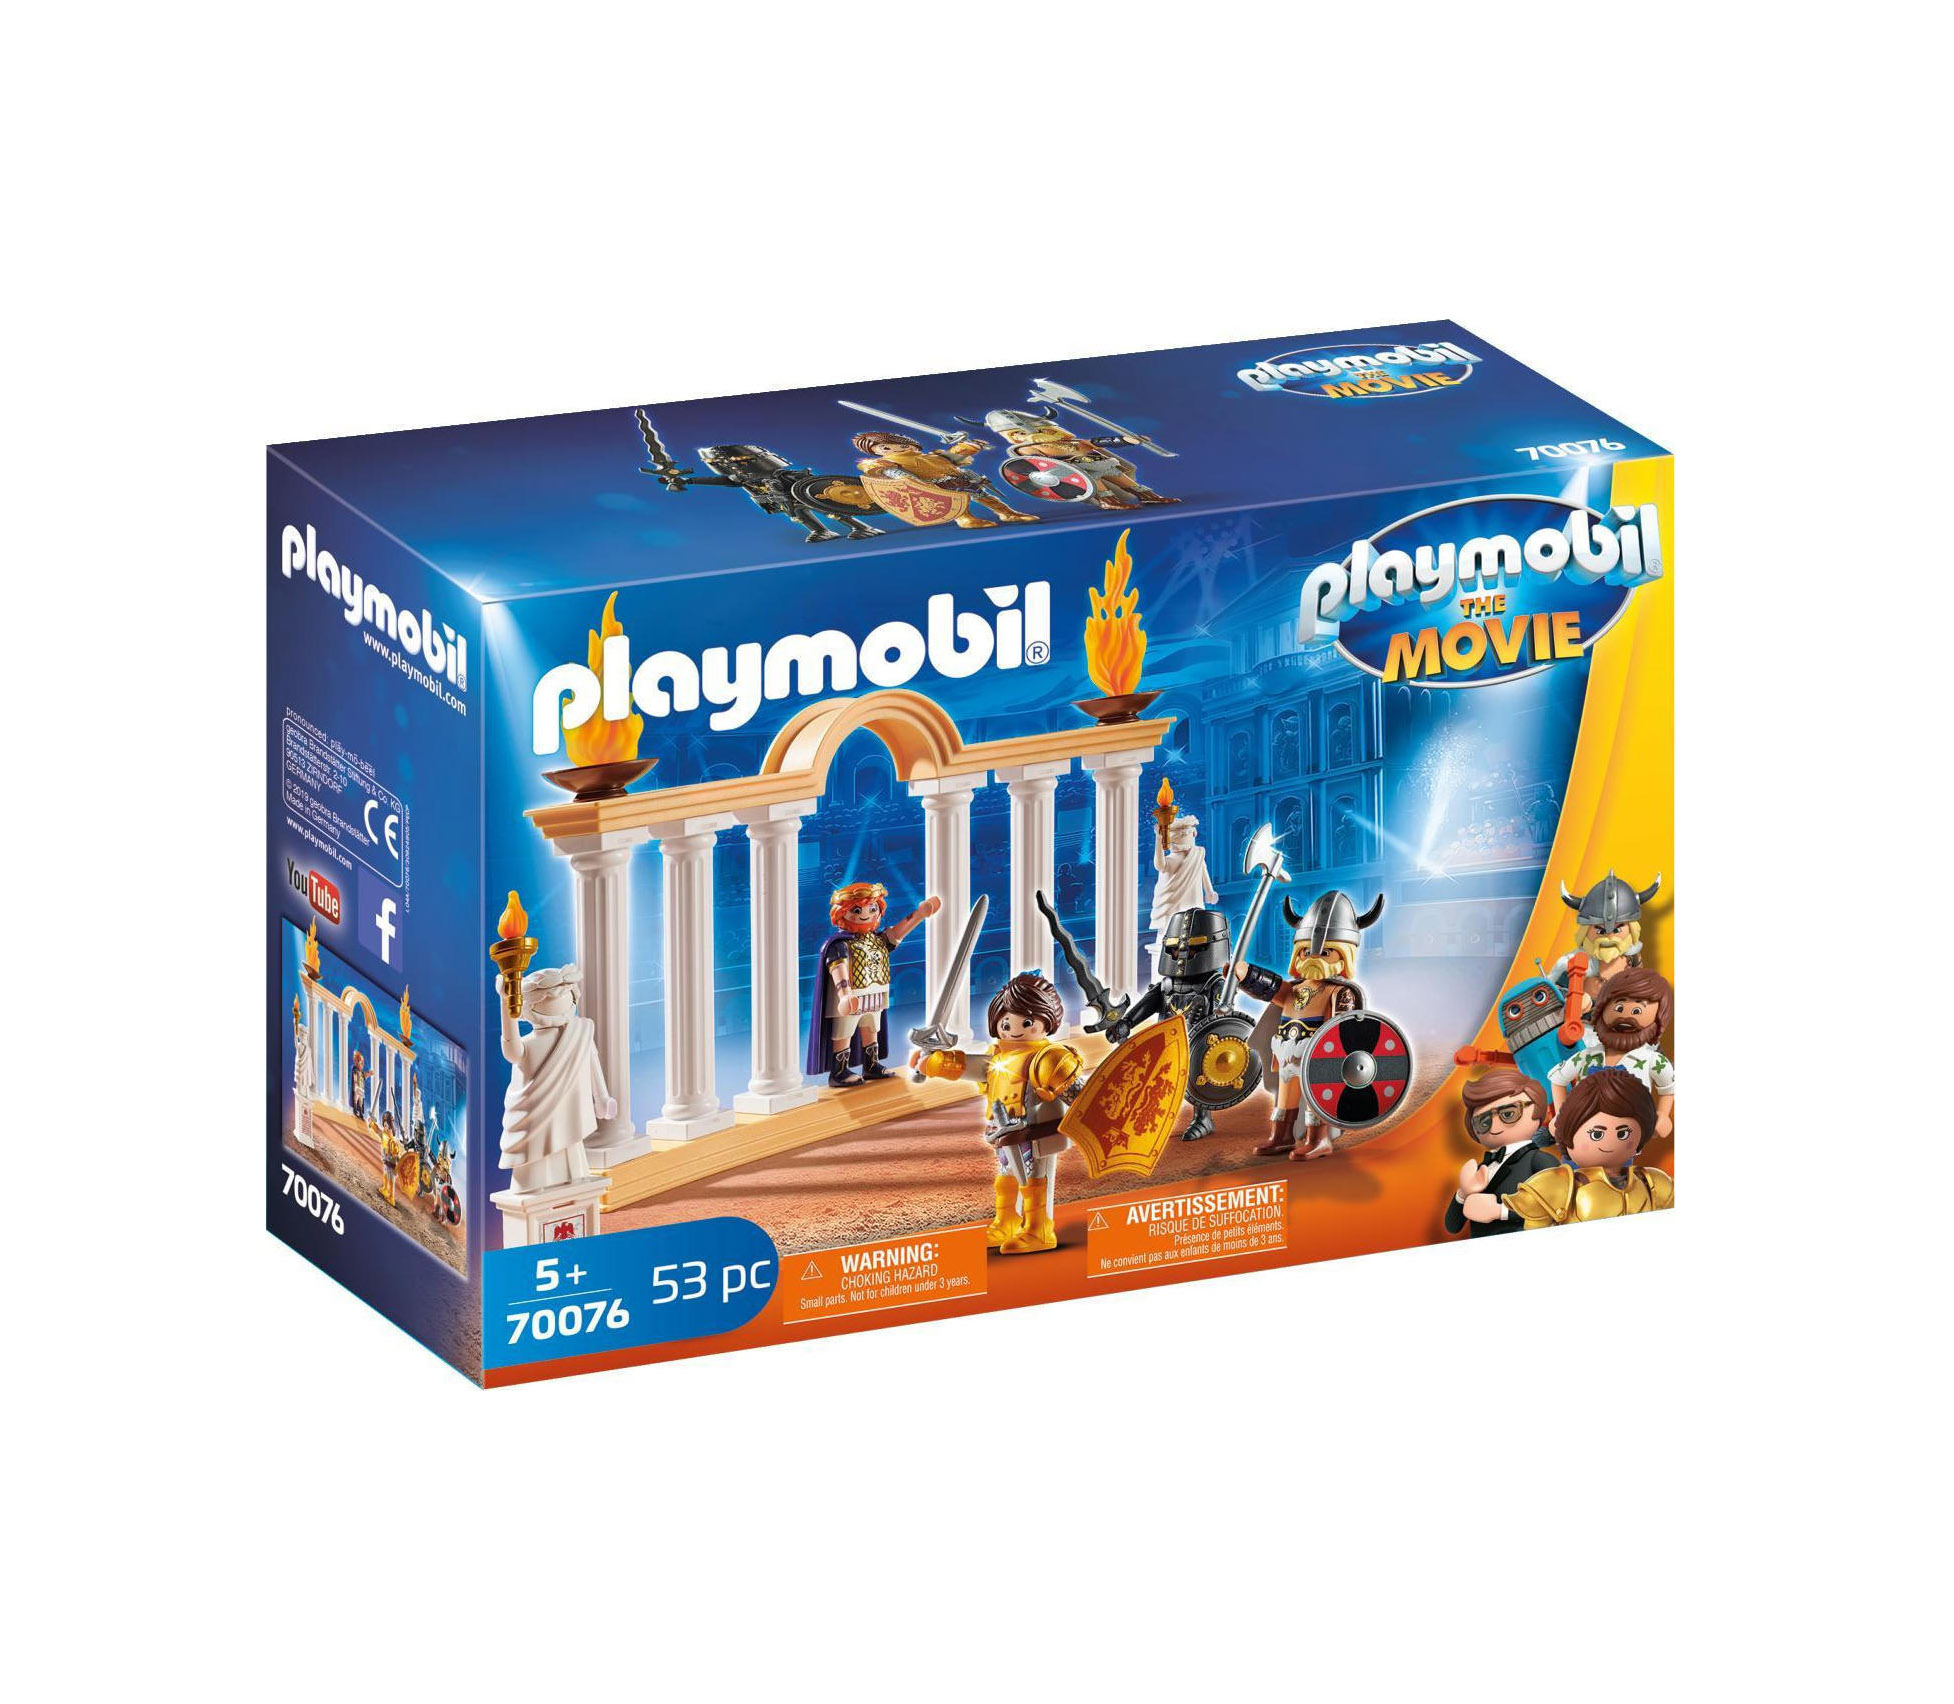 Playmobil The Movie: Emperor Maximus In The Colosseum 70076